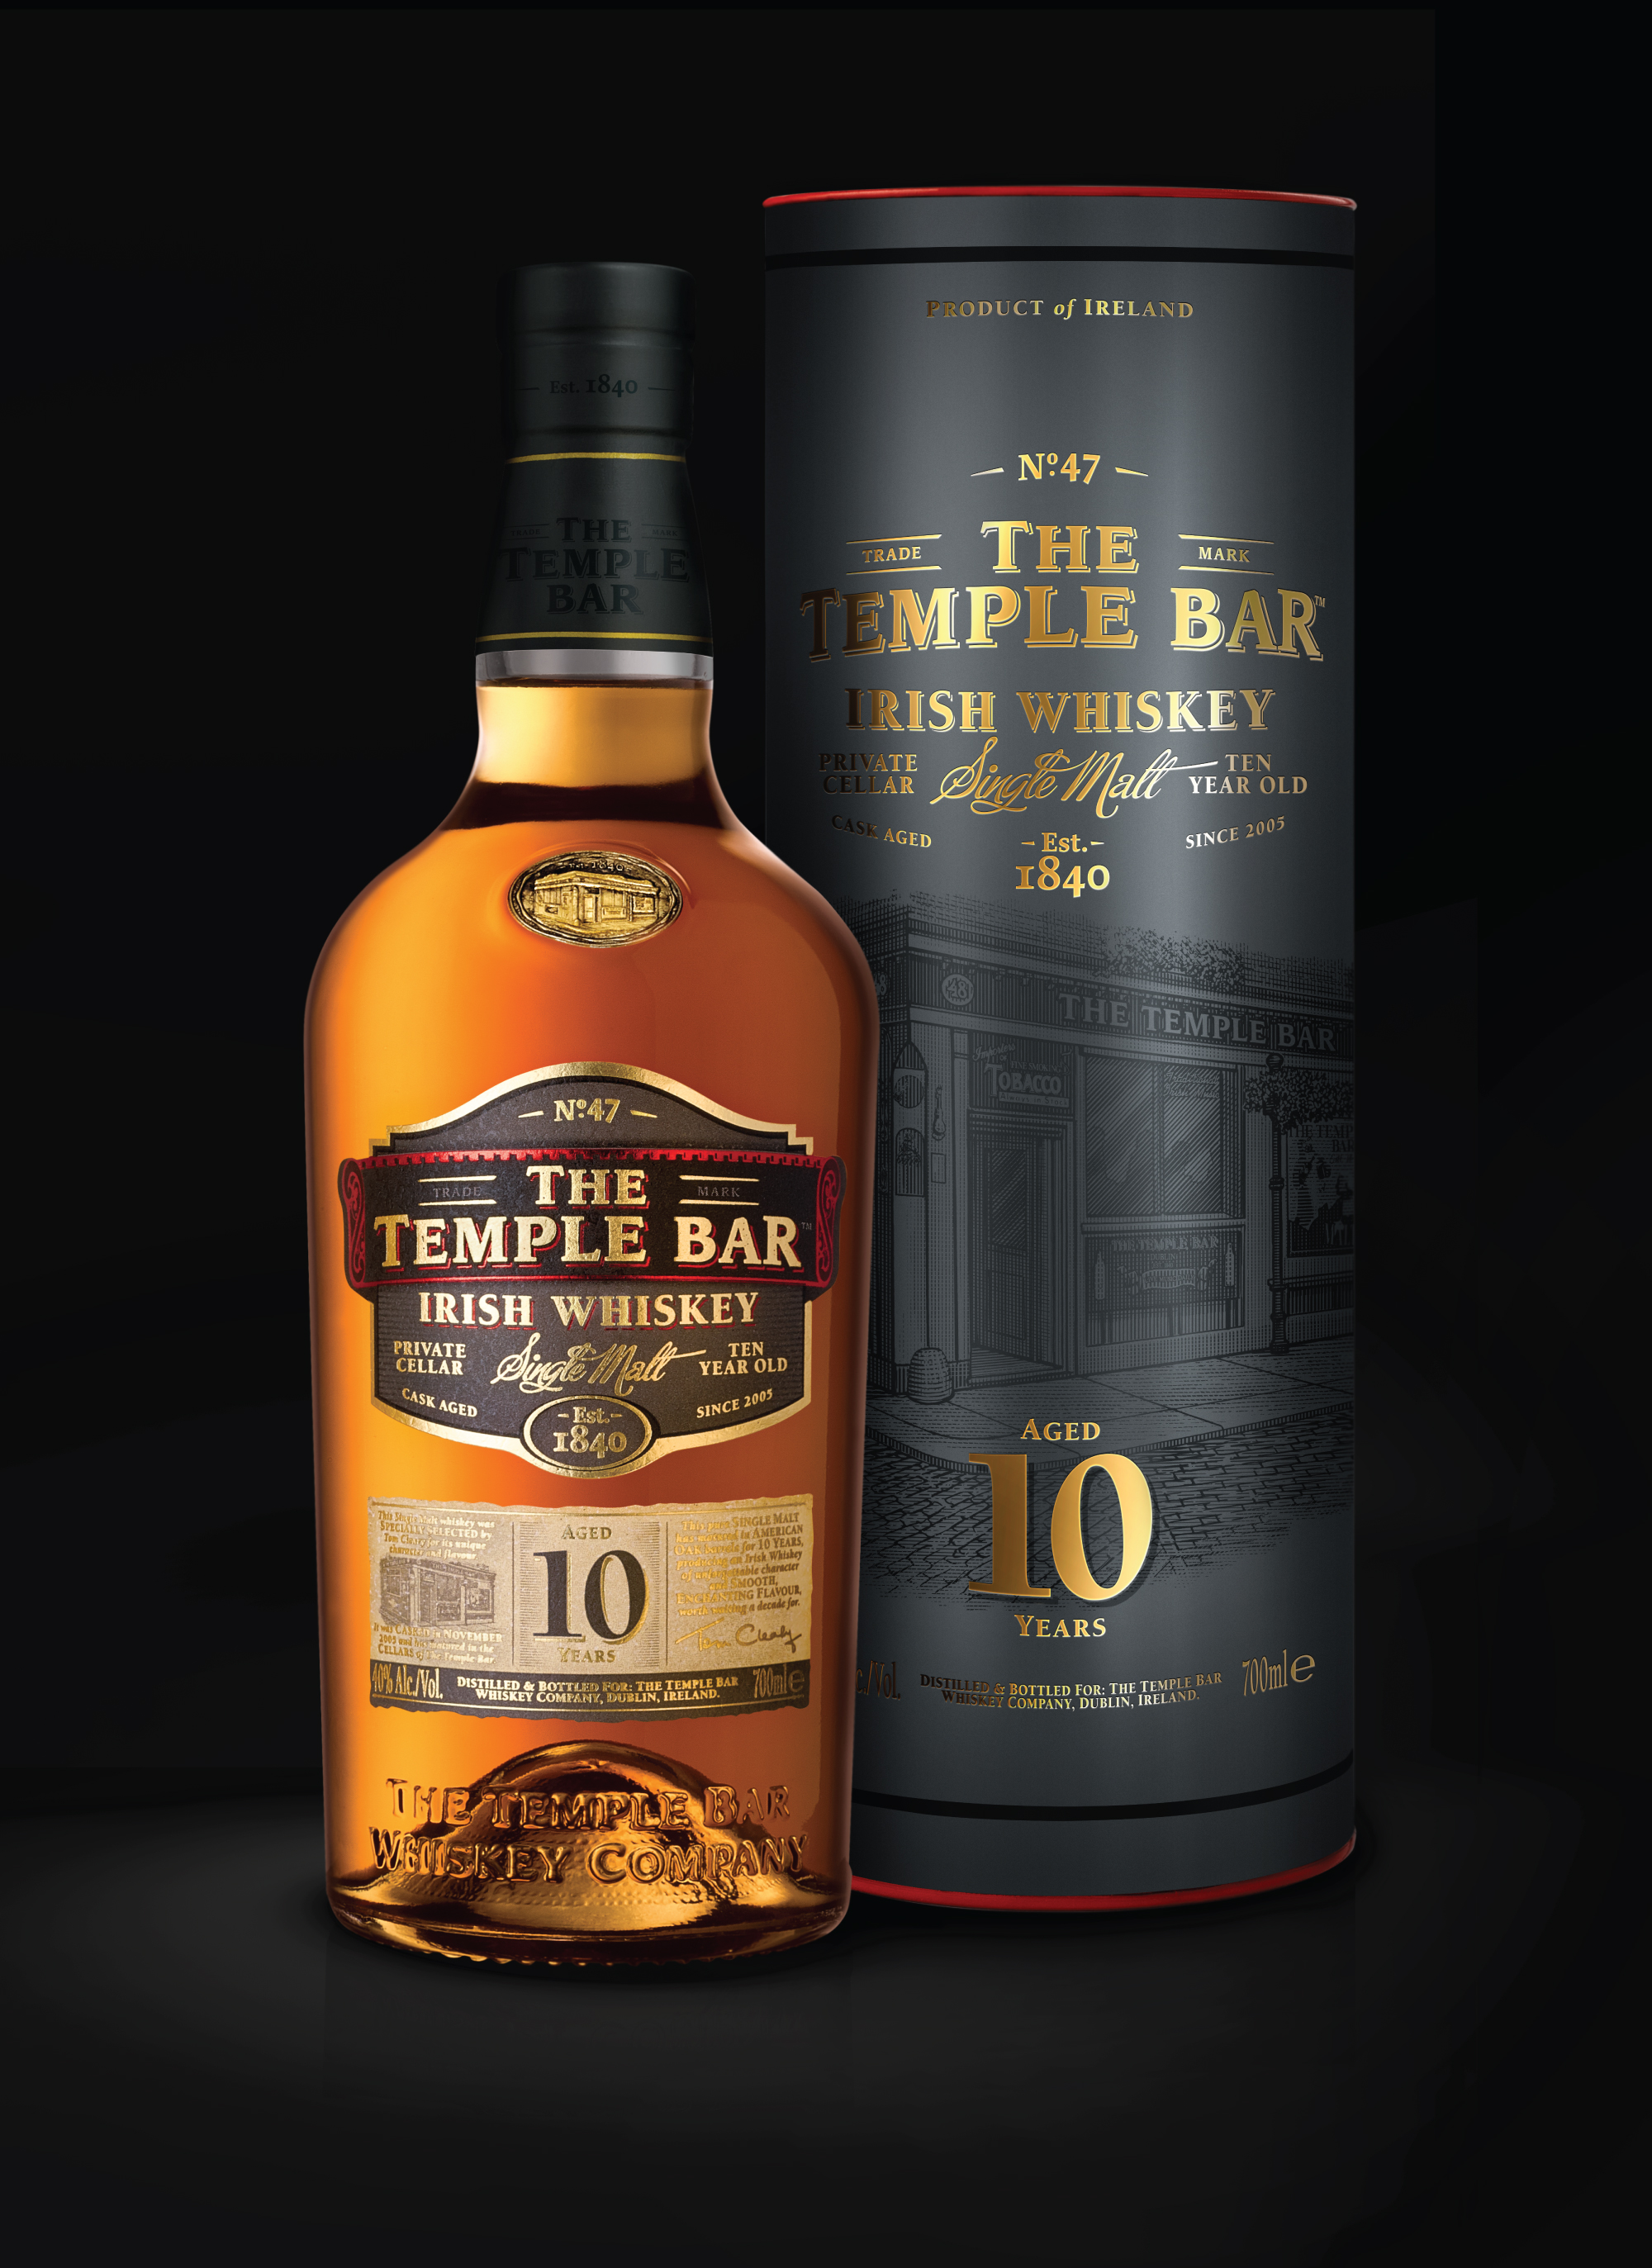 Cover image: The Temple Bar Whiskey